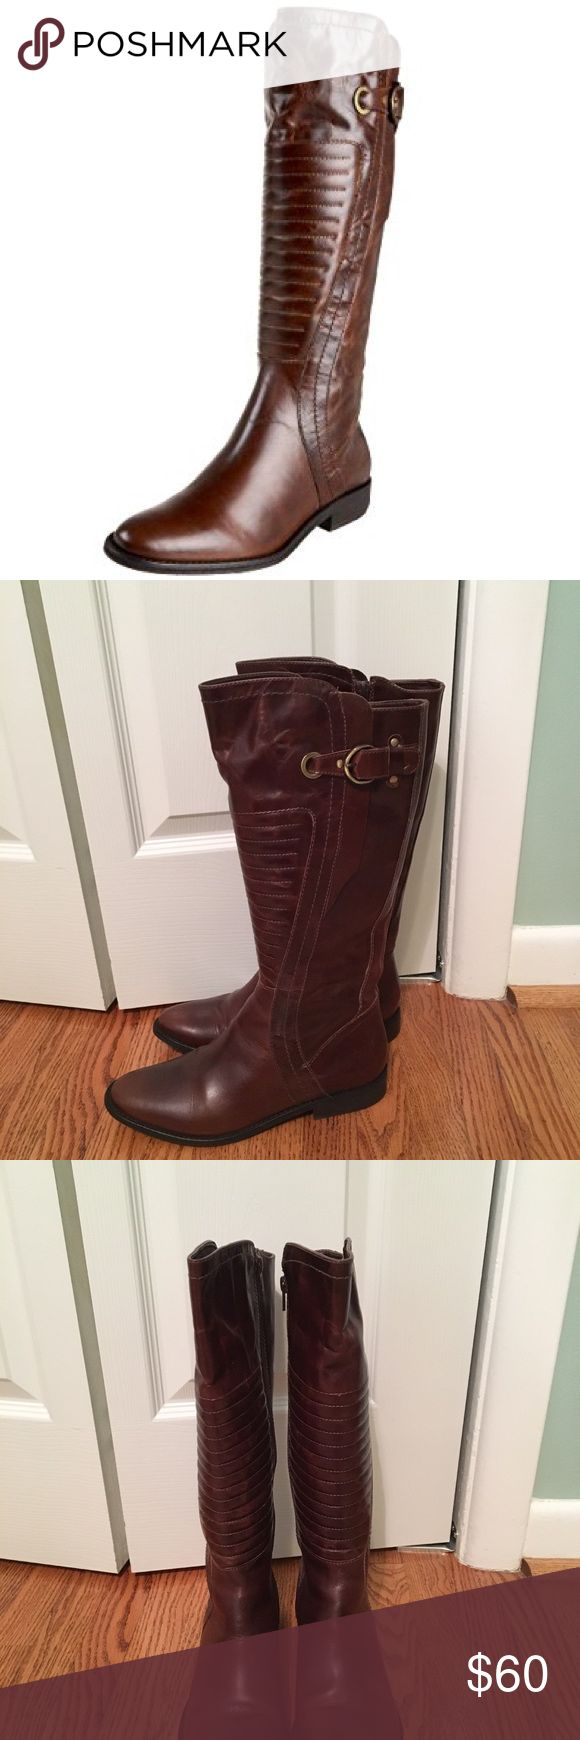 Carlos Santana boots size 9 Carlos Santana Momemtum leather boots size 9 in excellent fused condition. No scuffs or scrapes. 1 inch heel. Carlos Santana Shoes Winter & Rain Boots